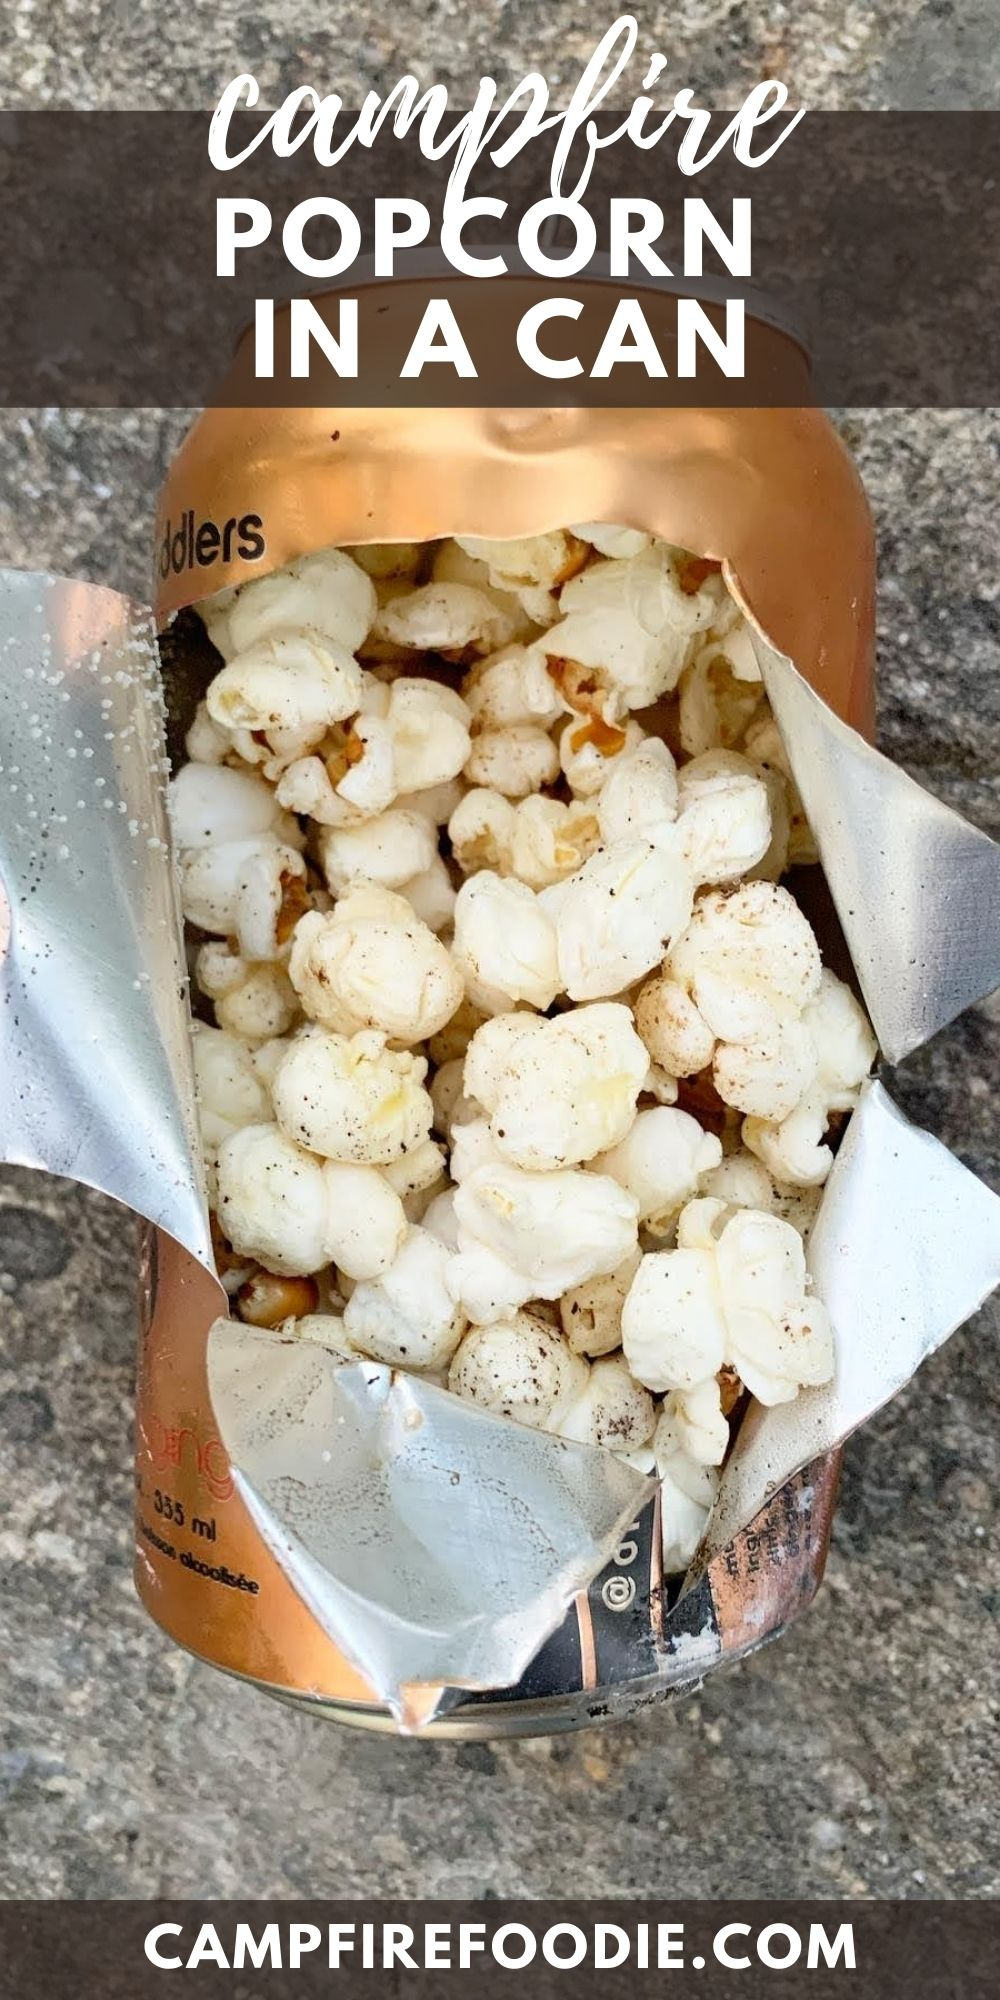 Campfire Popcorn in a Can